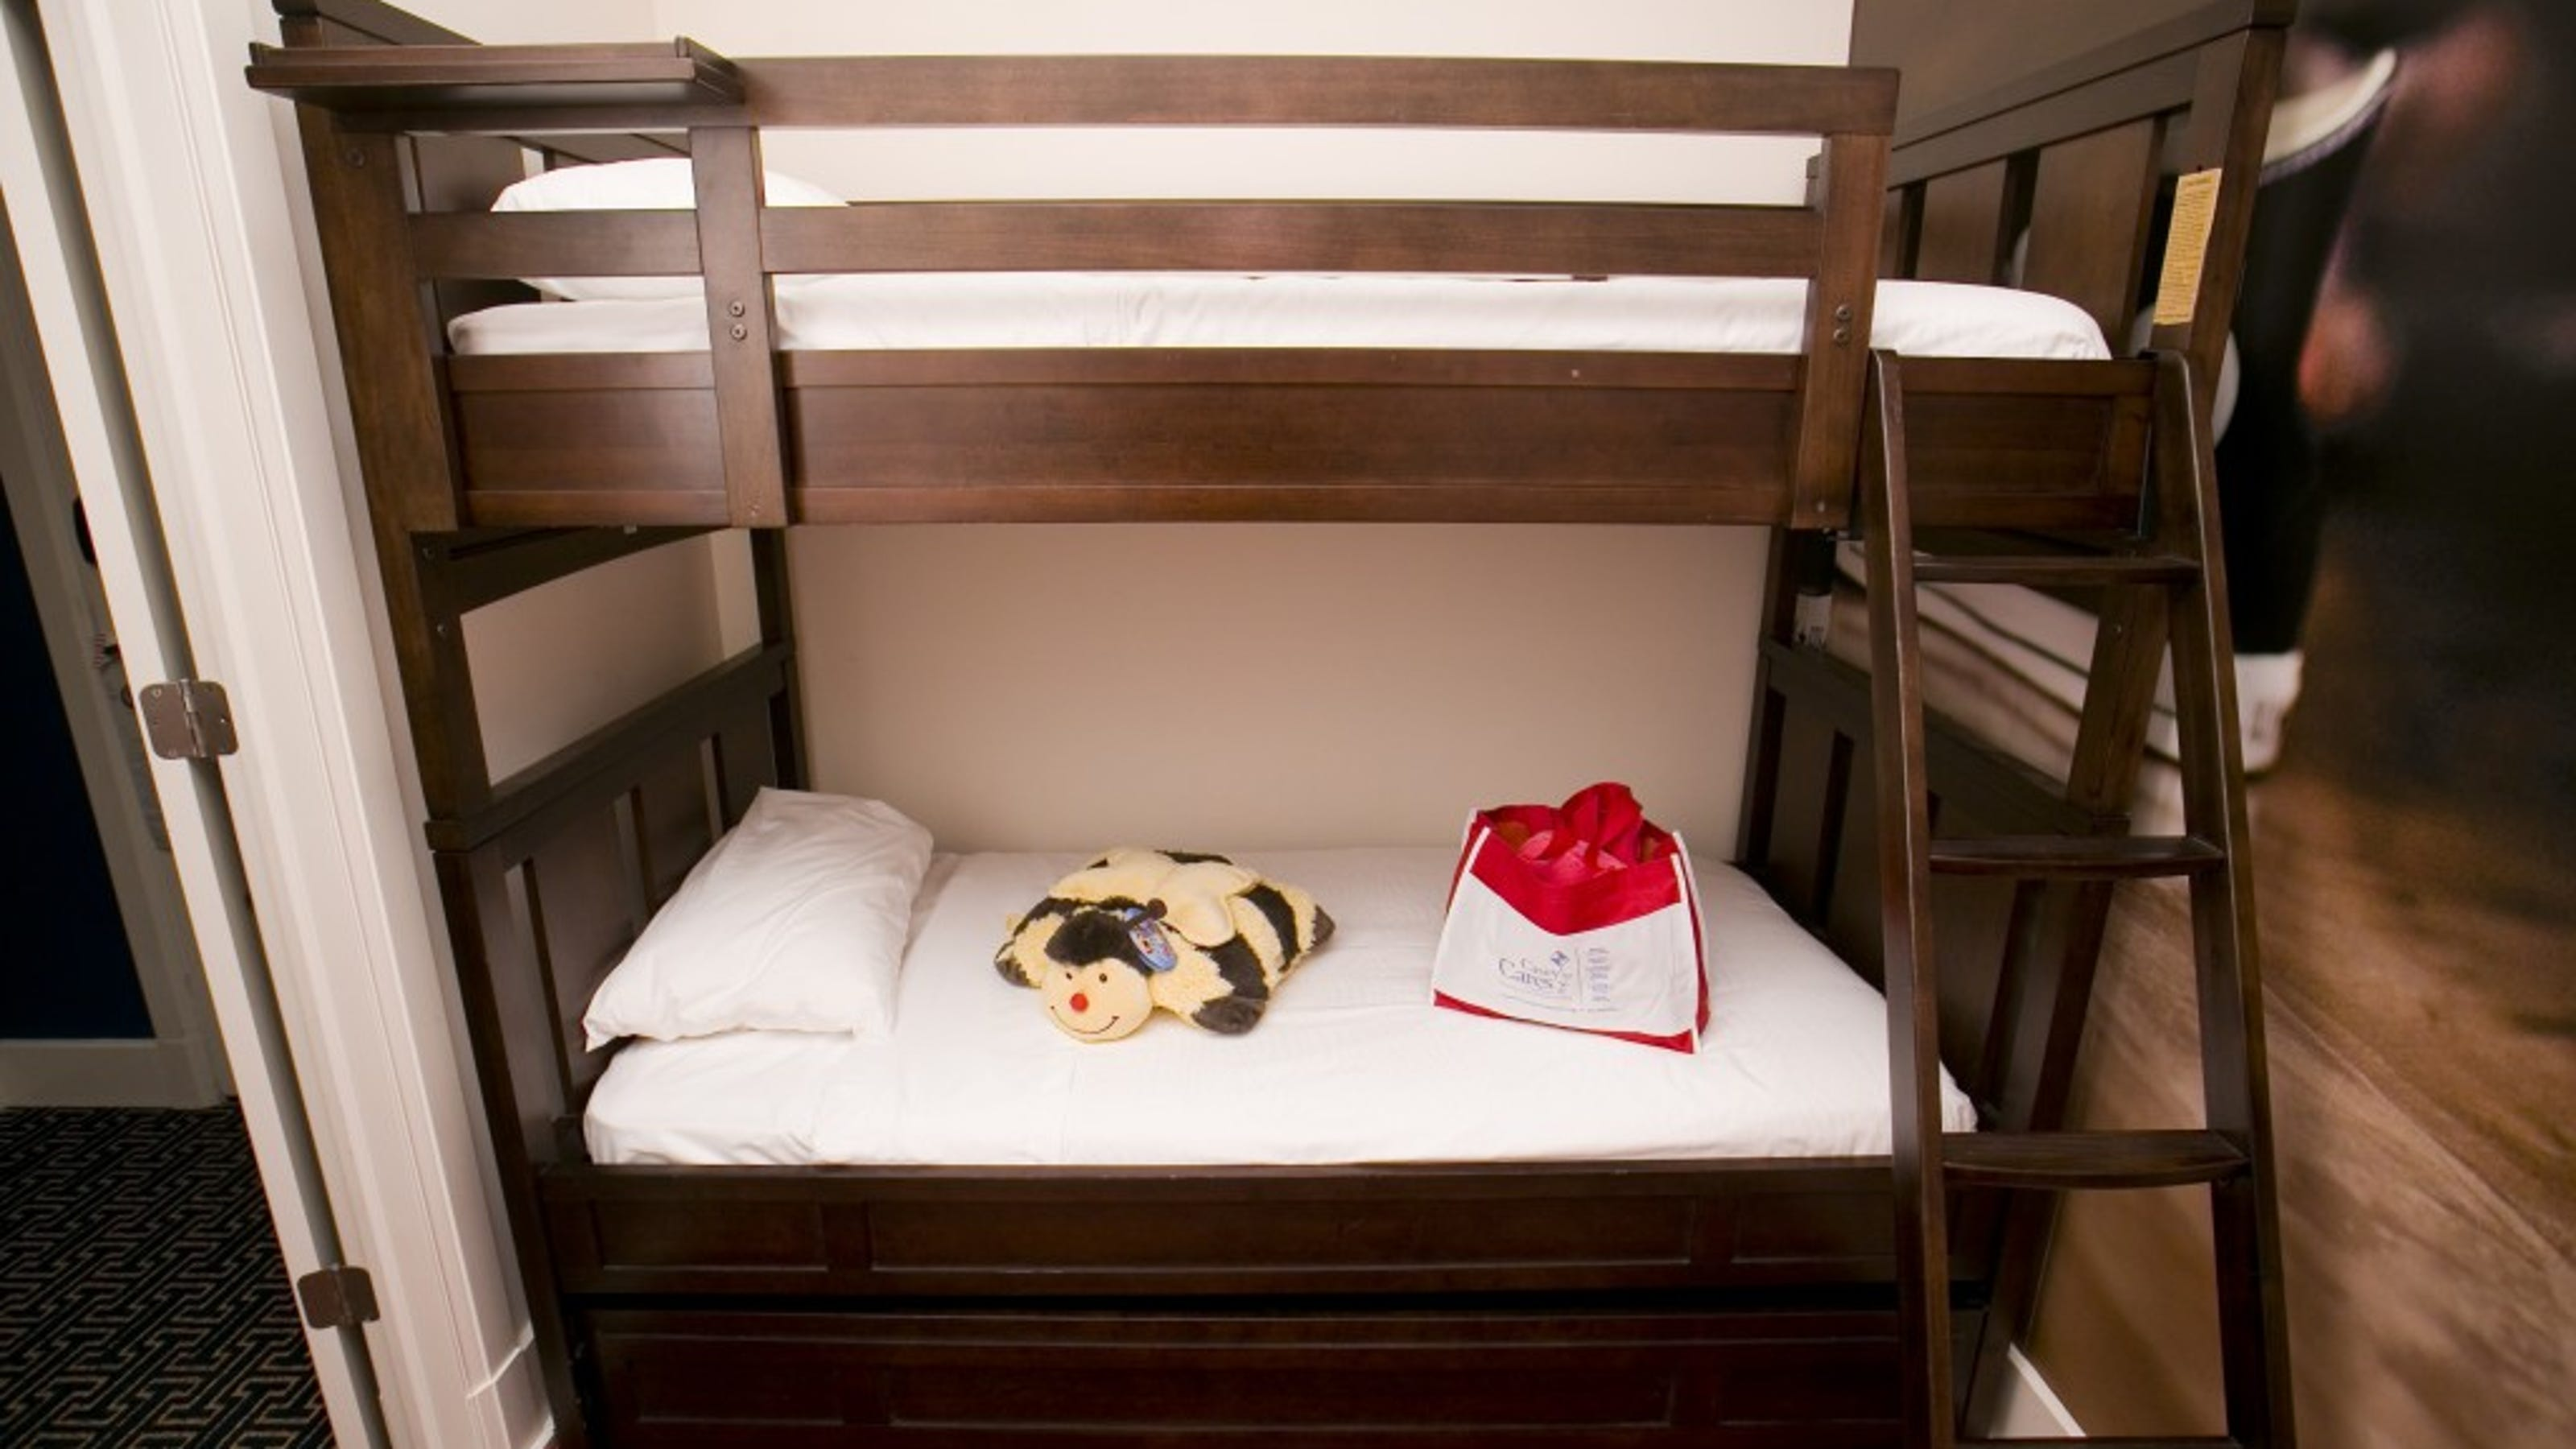 The Hottest New Amenity At Boutique Hotels Bunk Beds